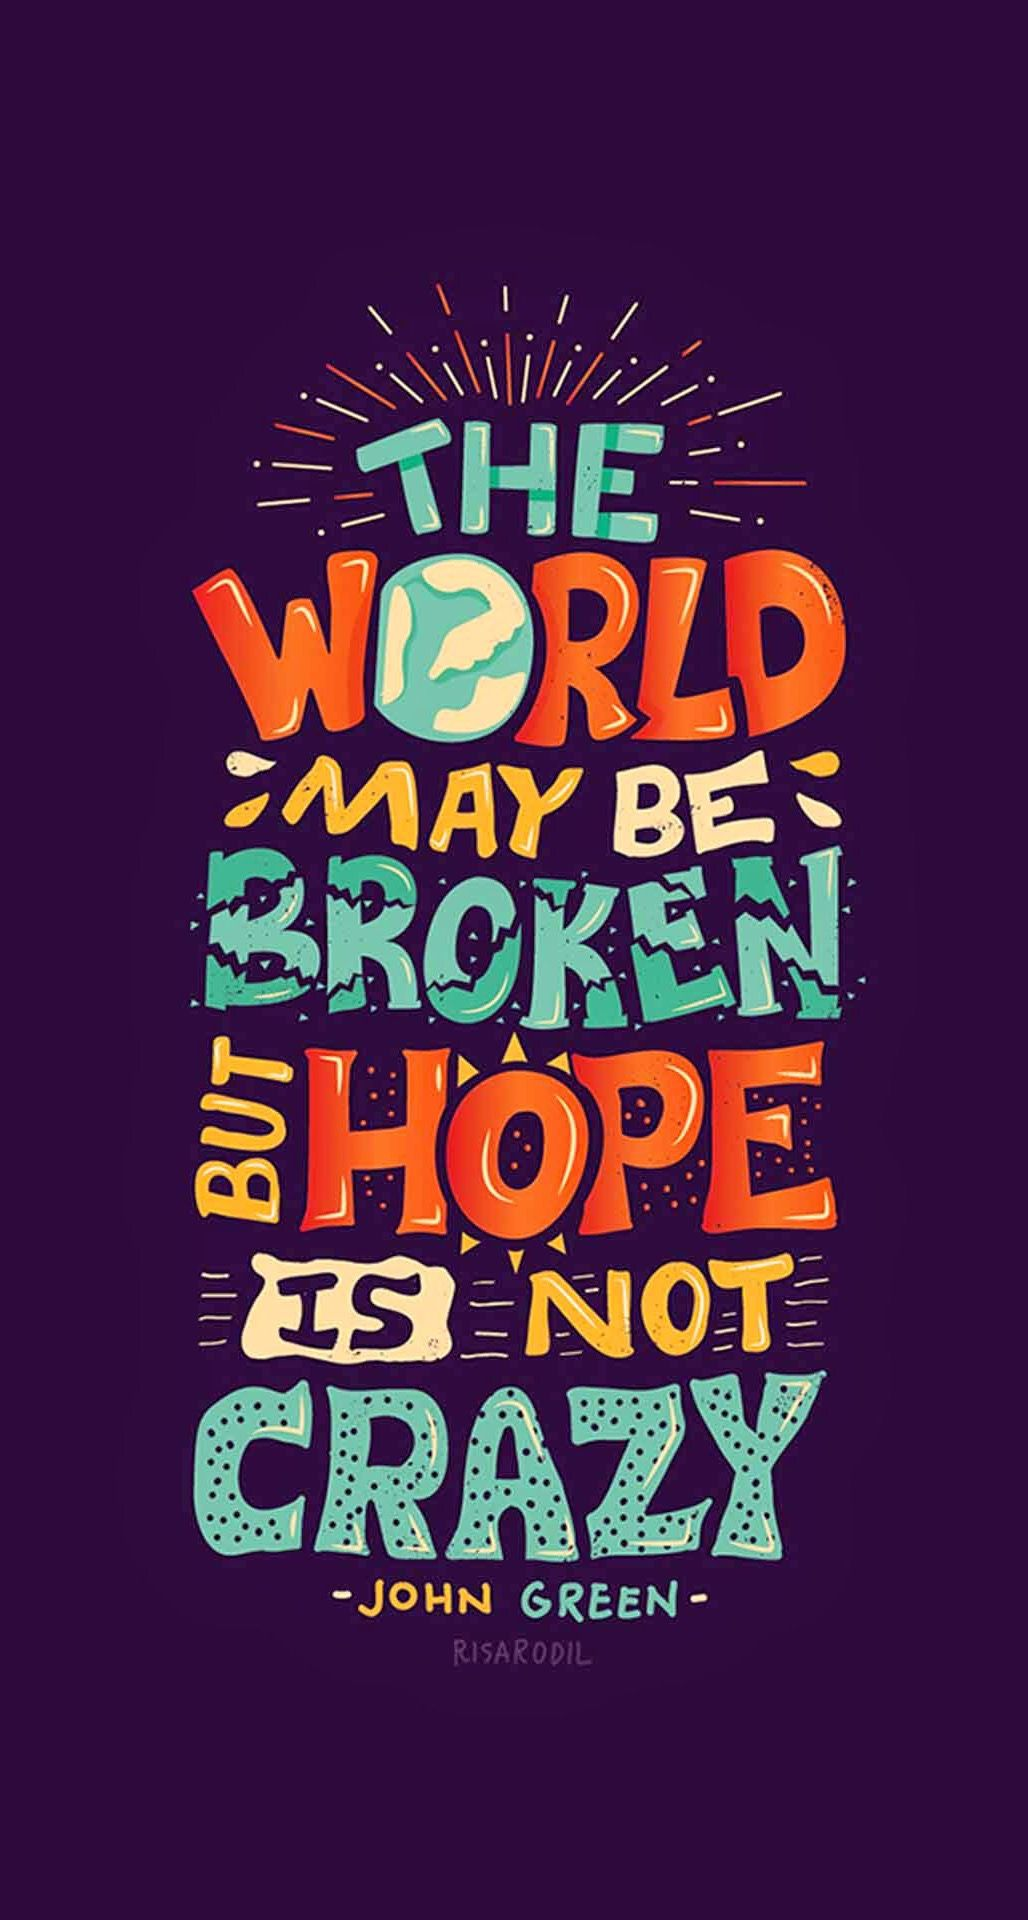 Hd wallpaper quotes for iphone - Hope Is Not Crazy Broken World Iphone 6 Plus Hd Wallpaper